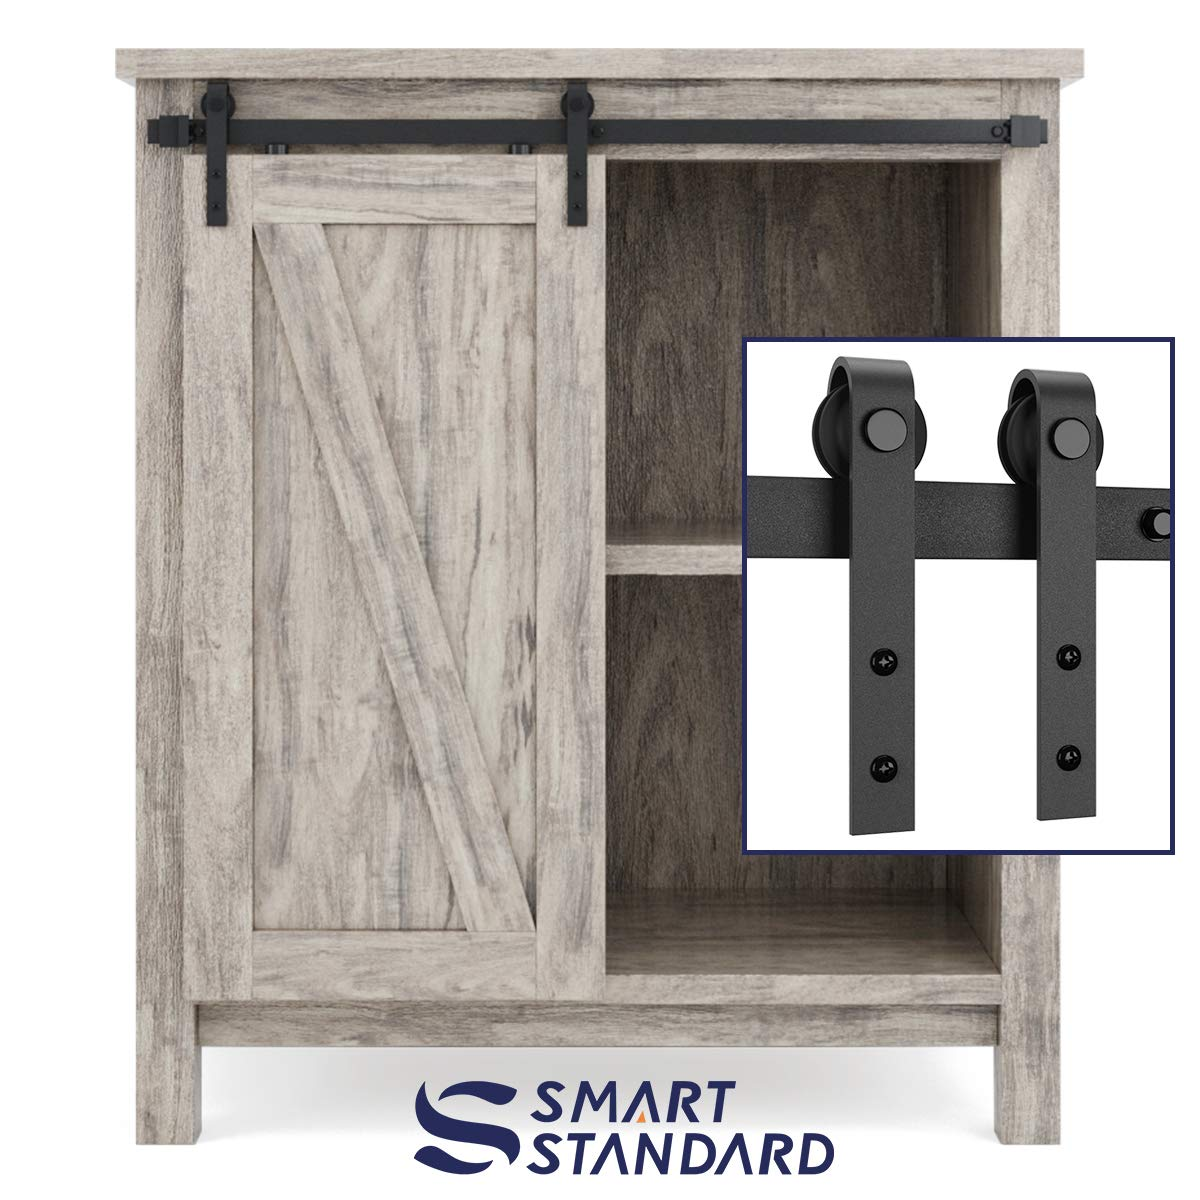 SMARTSTANDARD 3ft Cabinet Barn Door Hardware Kit - Super Mini Sliding Door Hardware - for Cabinet TV Stand Console - Simple and Easy to Install - Fit 18'' Wide Door Panel (NO Cabinet) (J Shape Hanger)